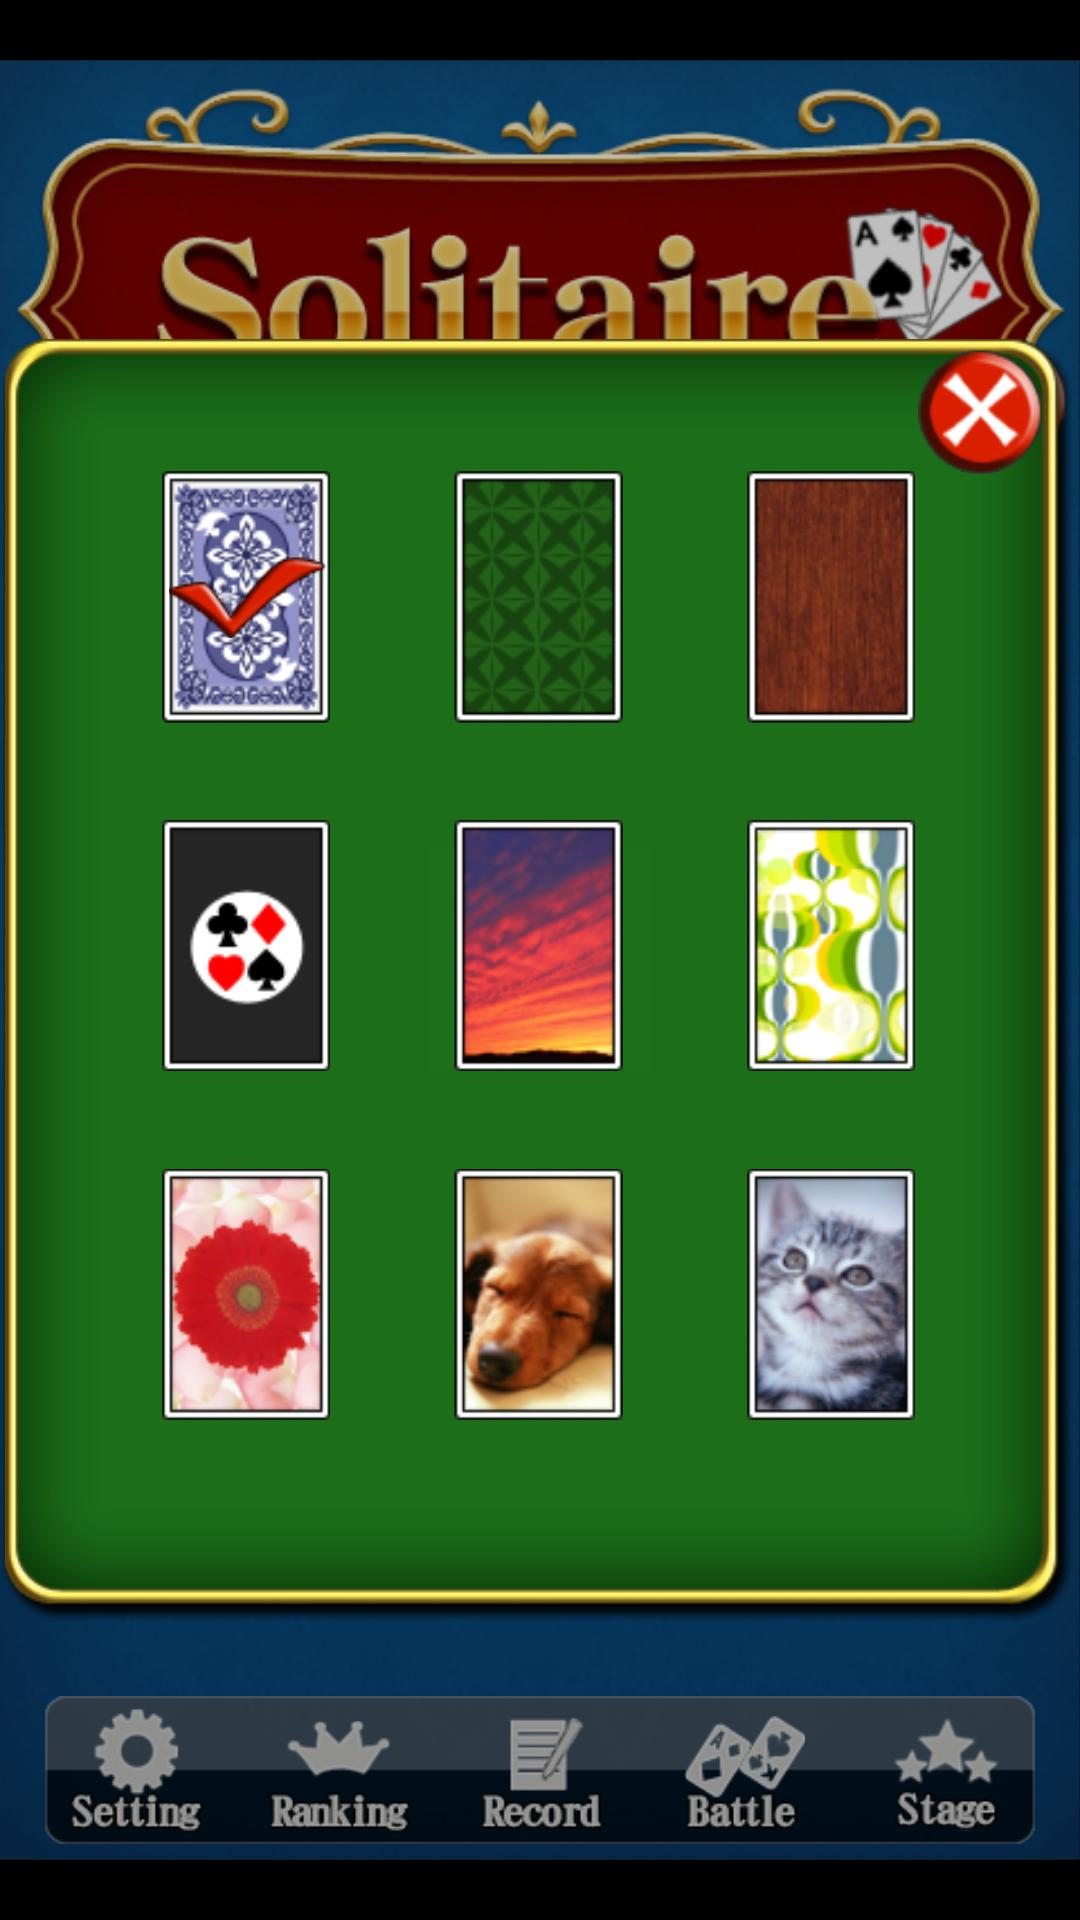 Solitaire 1.6.15 Screenshot 11